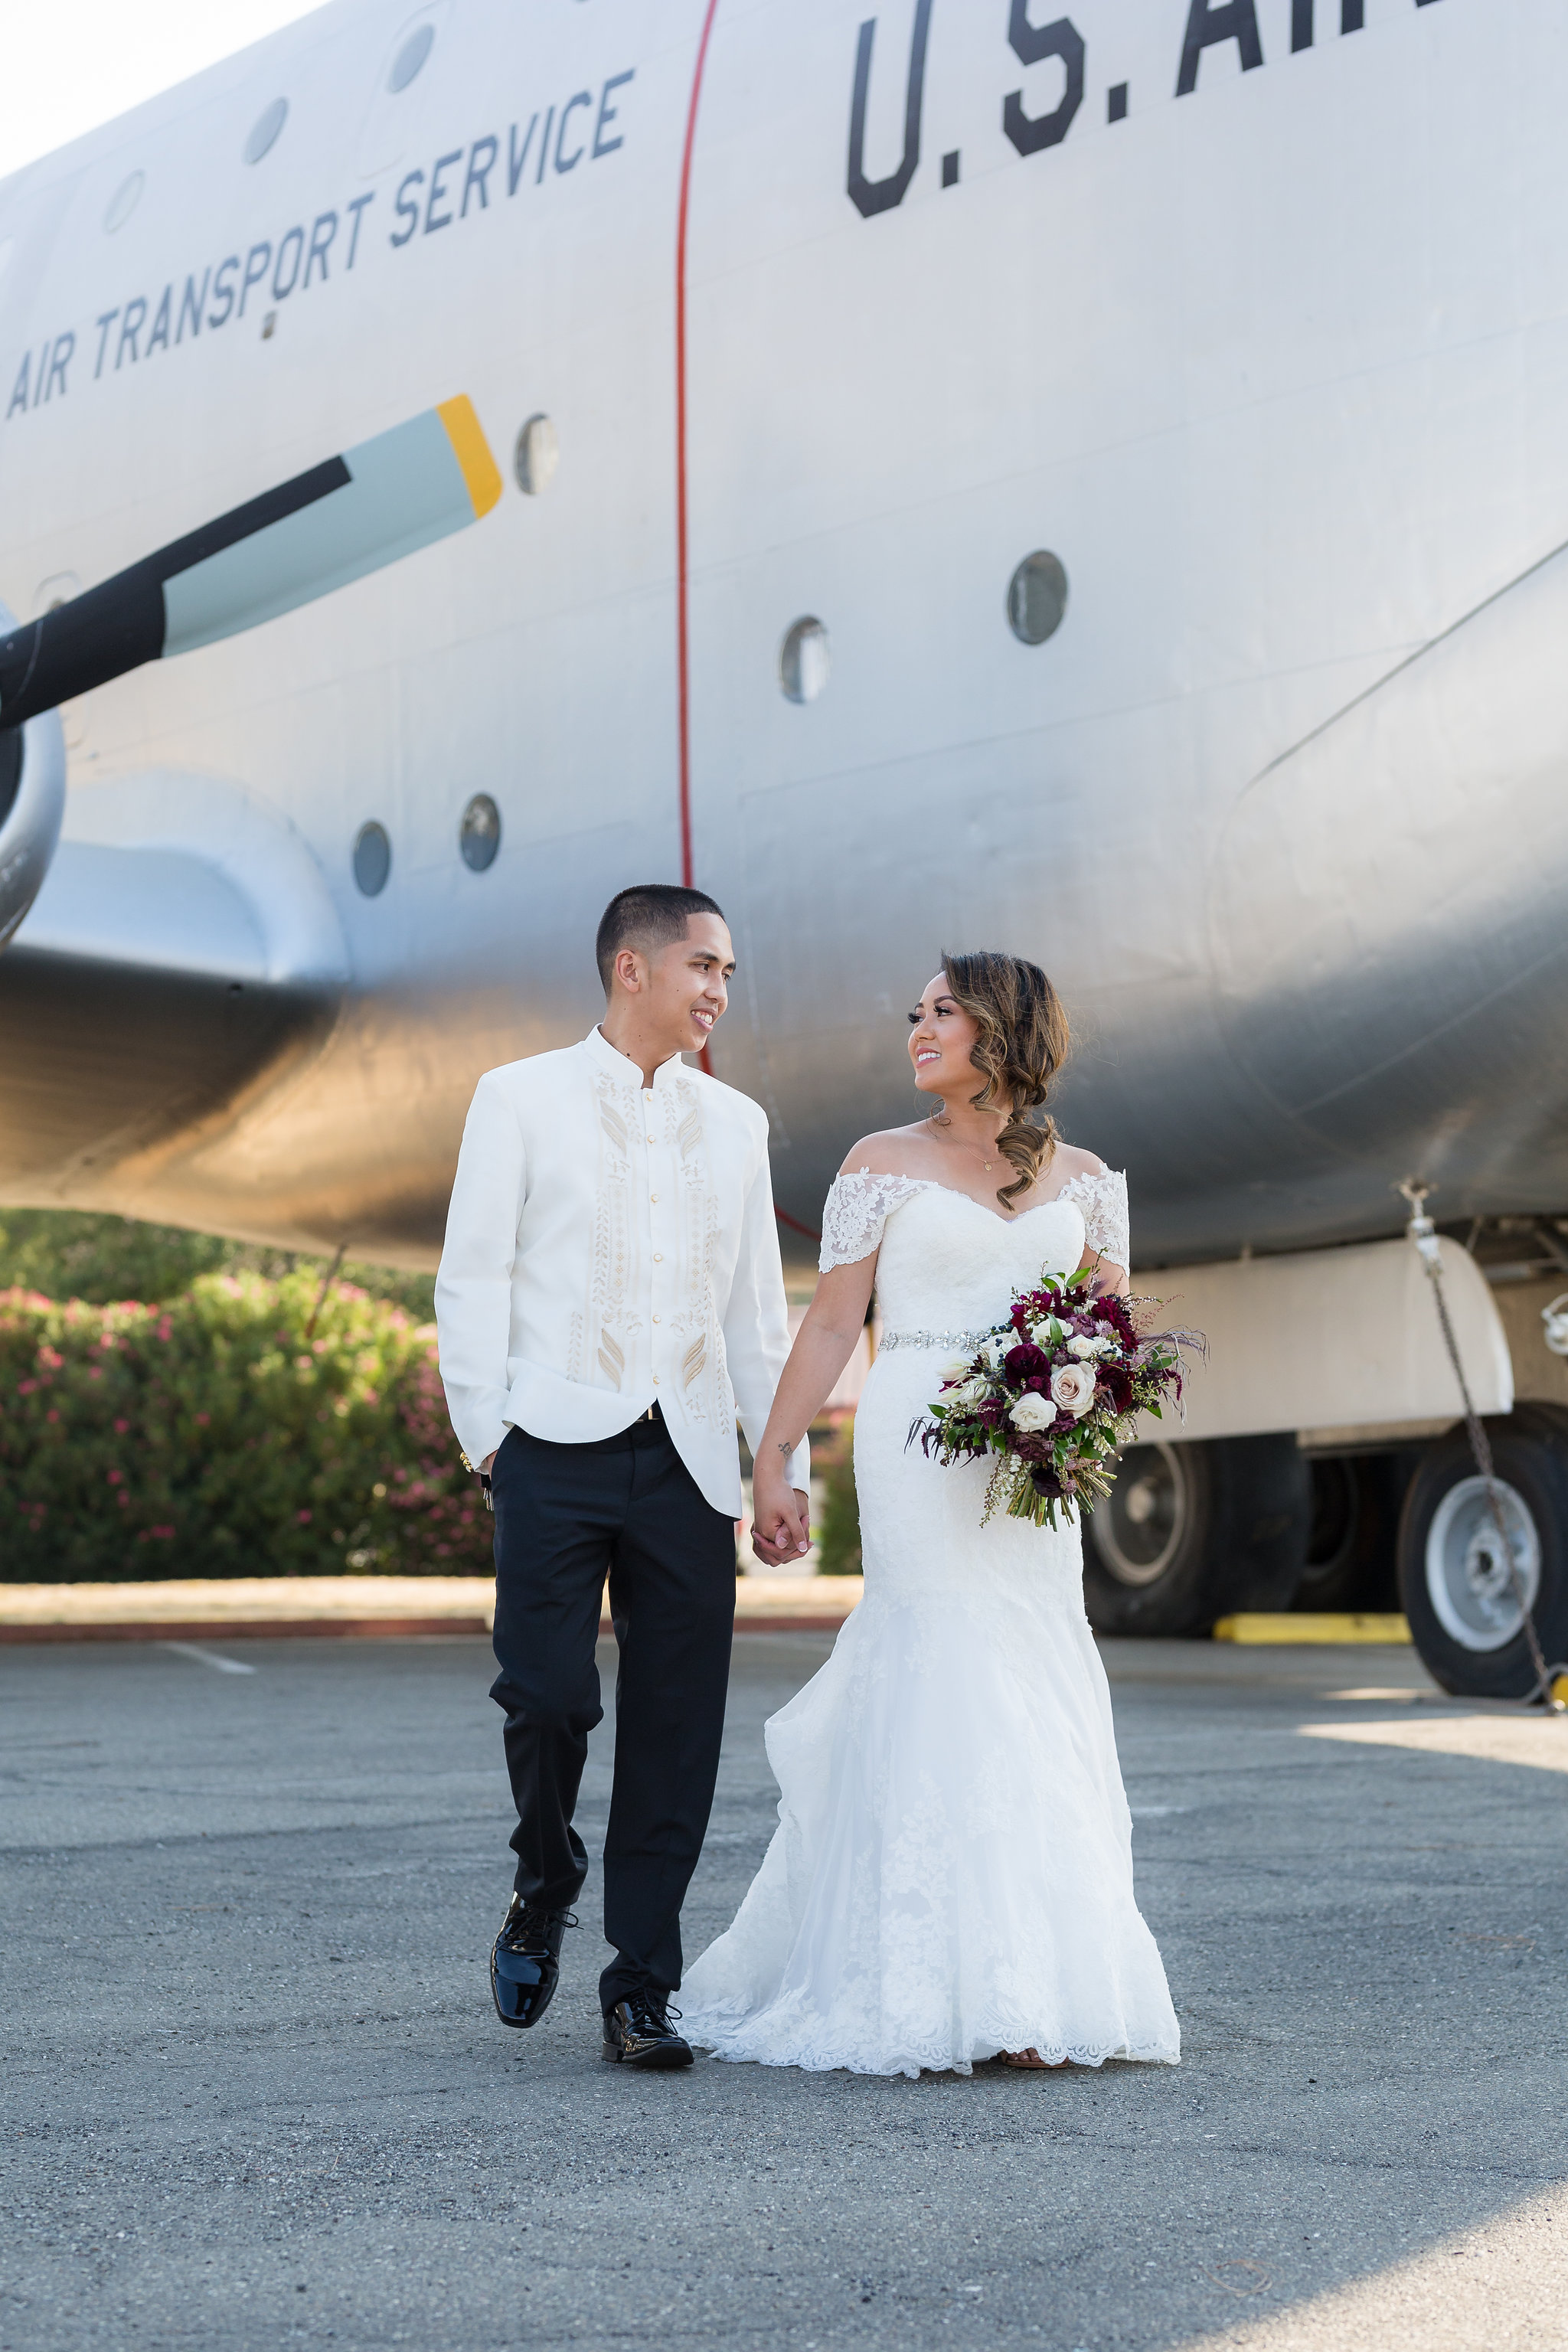 travis air force base wedding-14.jpg